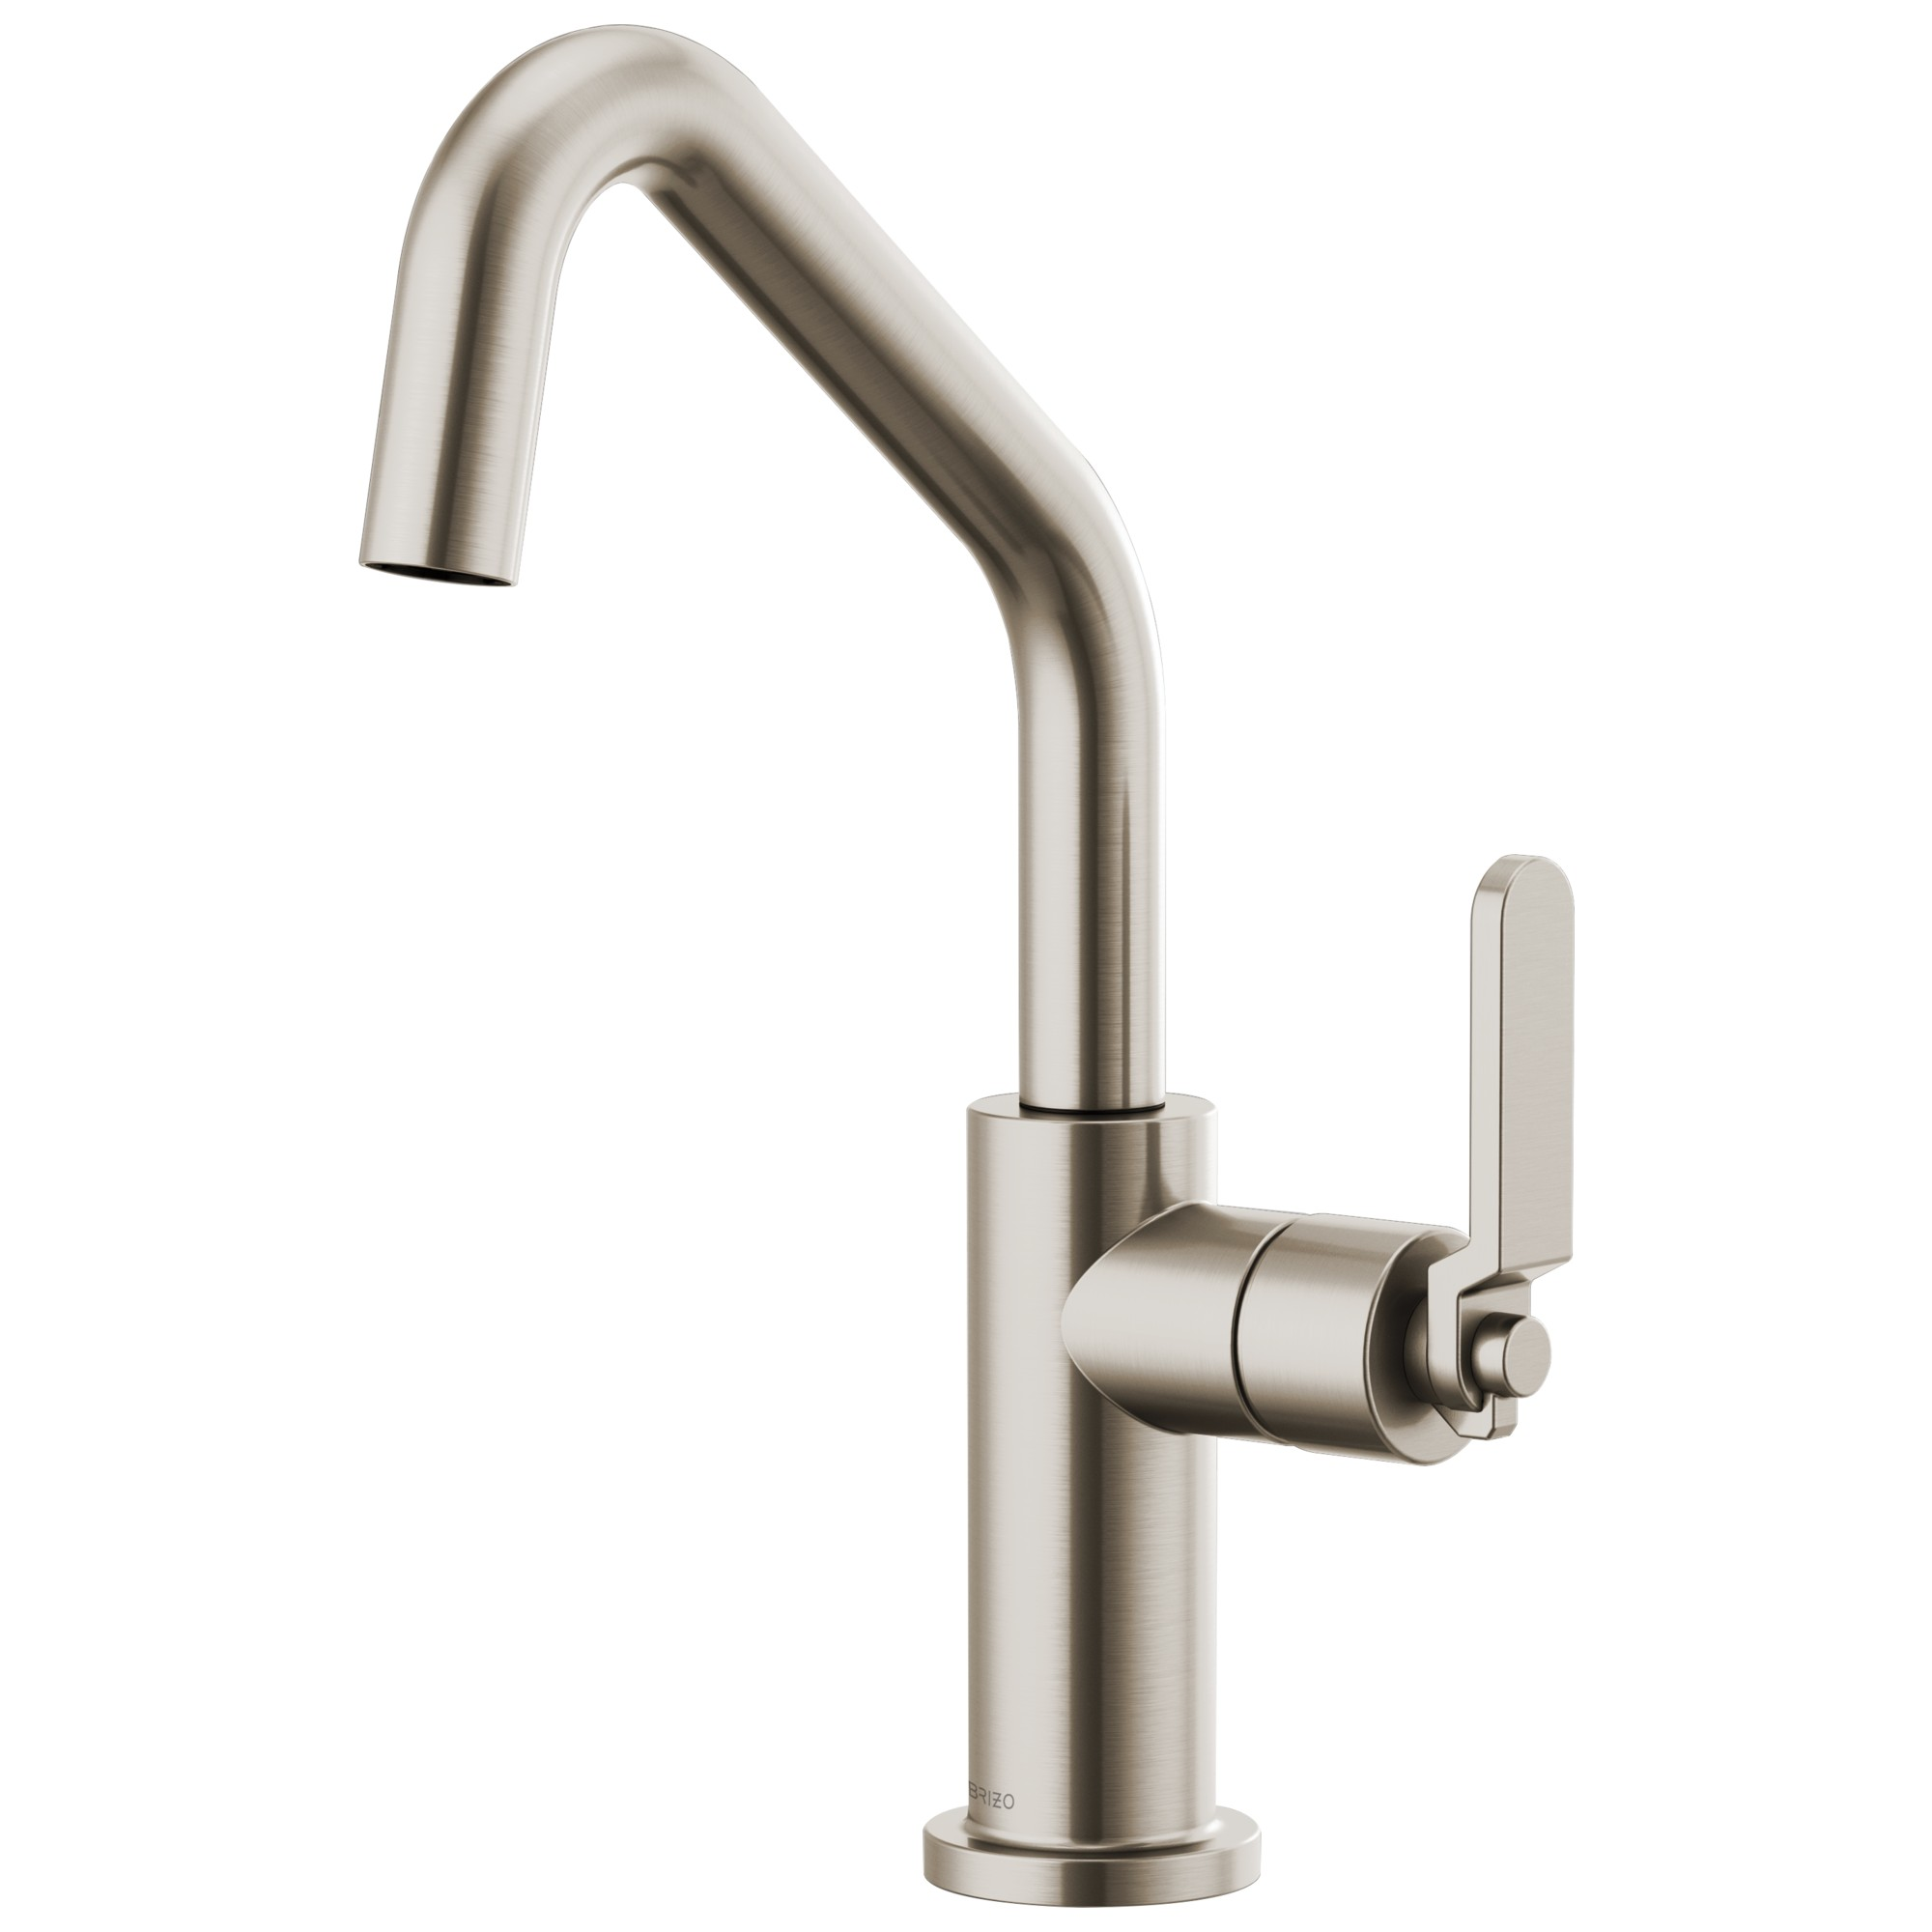 Brizo 61064LF-SS Litze Bar Faucet with Angled Spout and Industrial Handle - Stainless